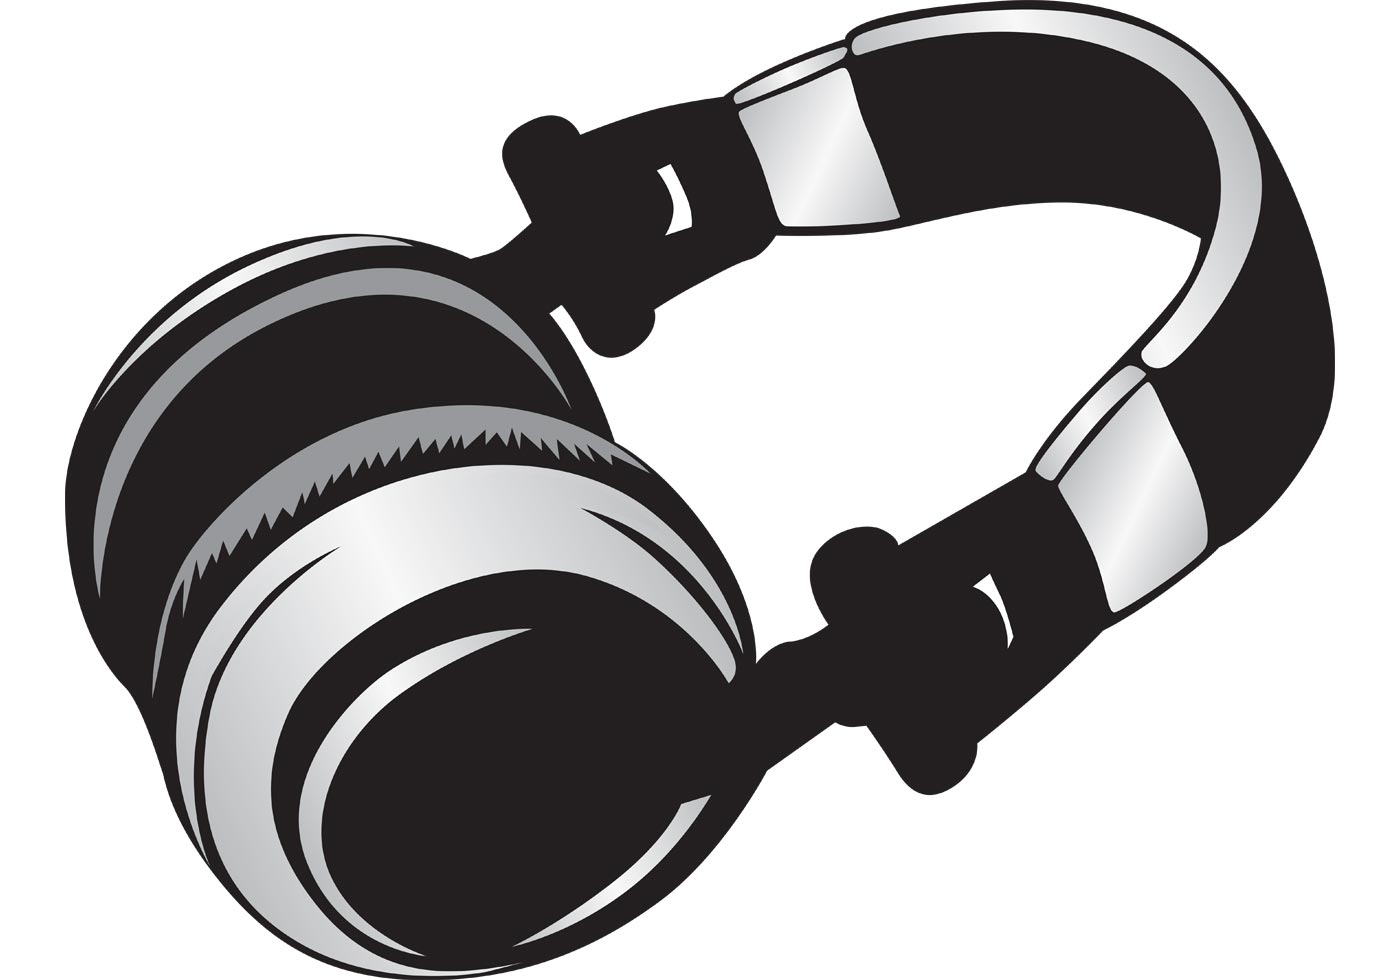 Headphone - Download Free Vector Art, Stock Graphics & Images